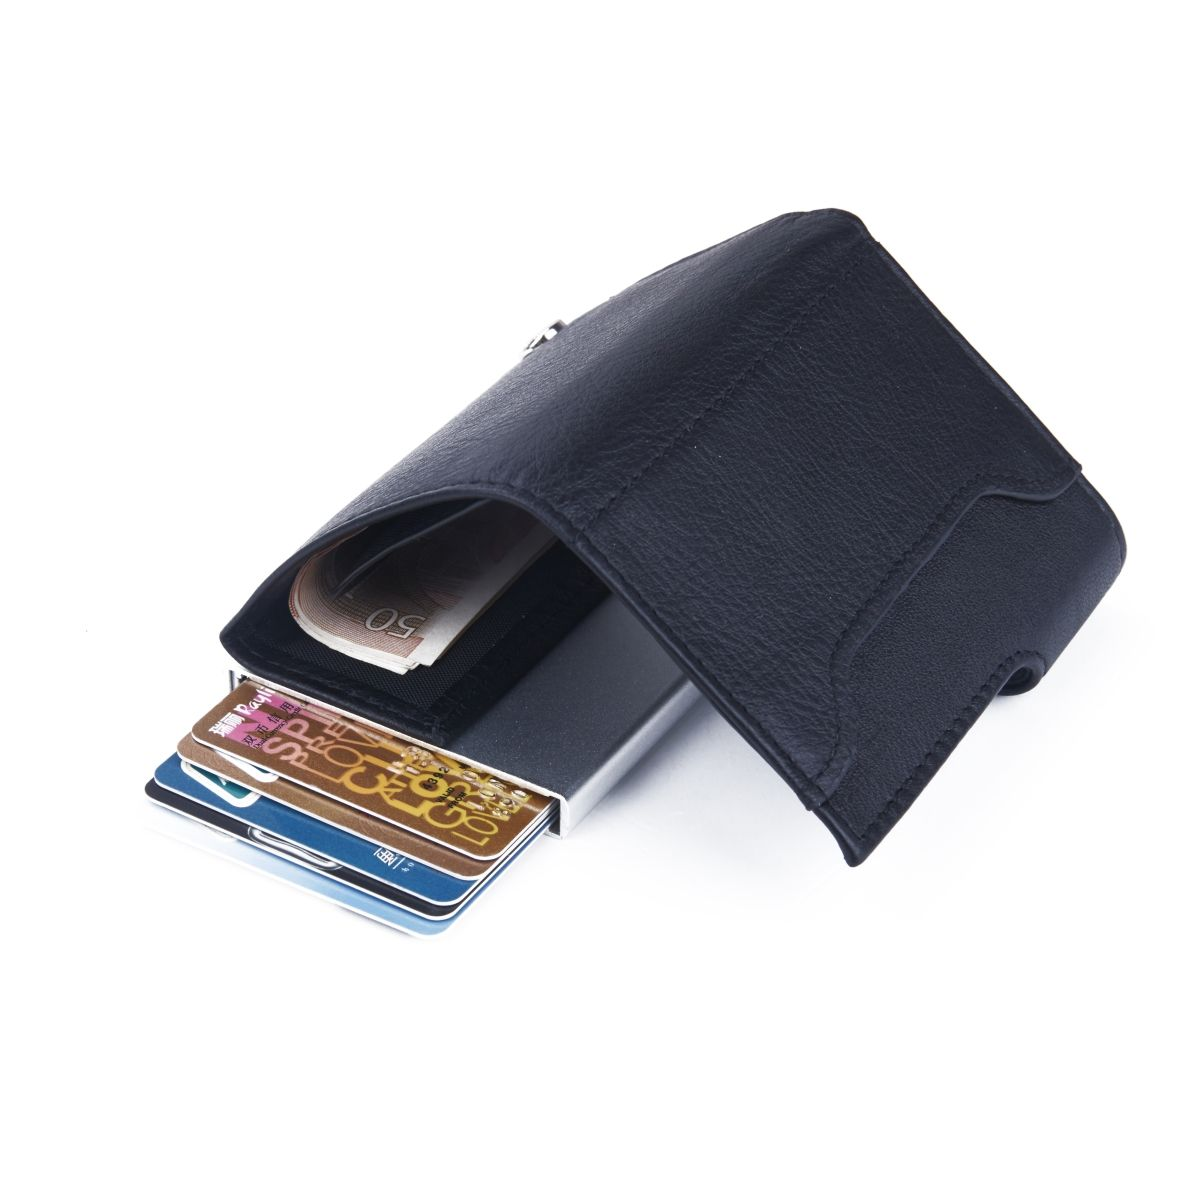 C-Secure Aluminum Card Holder with PU Leather - Black